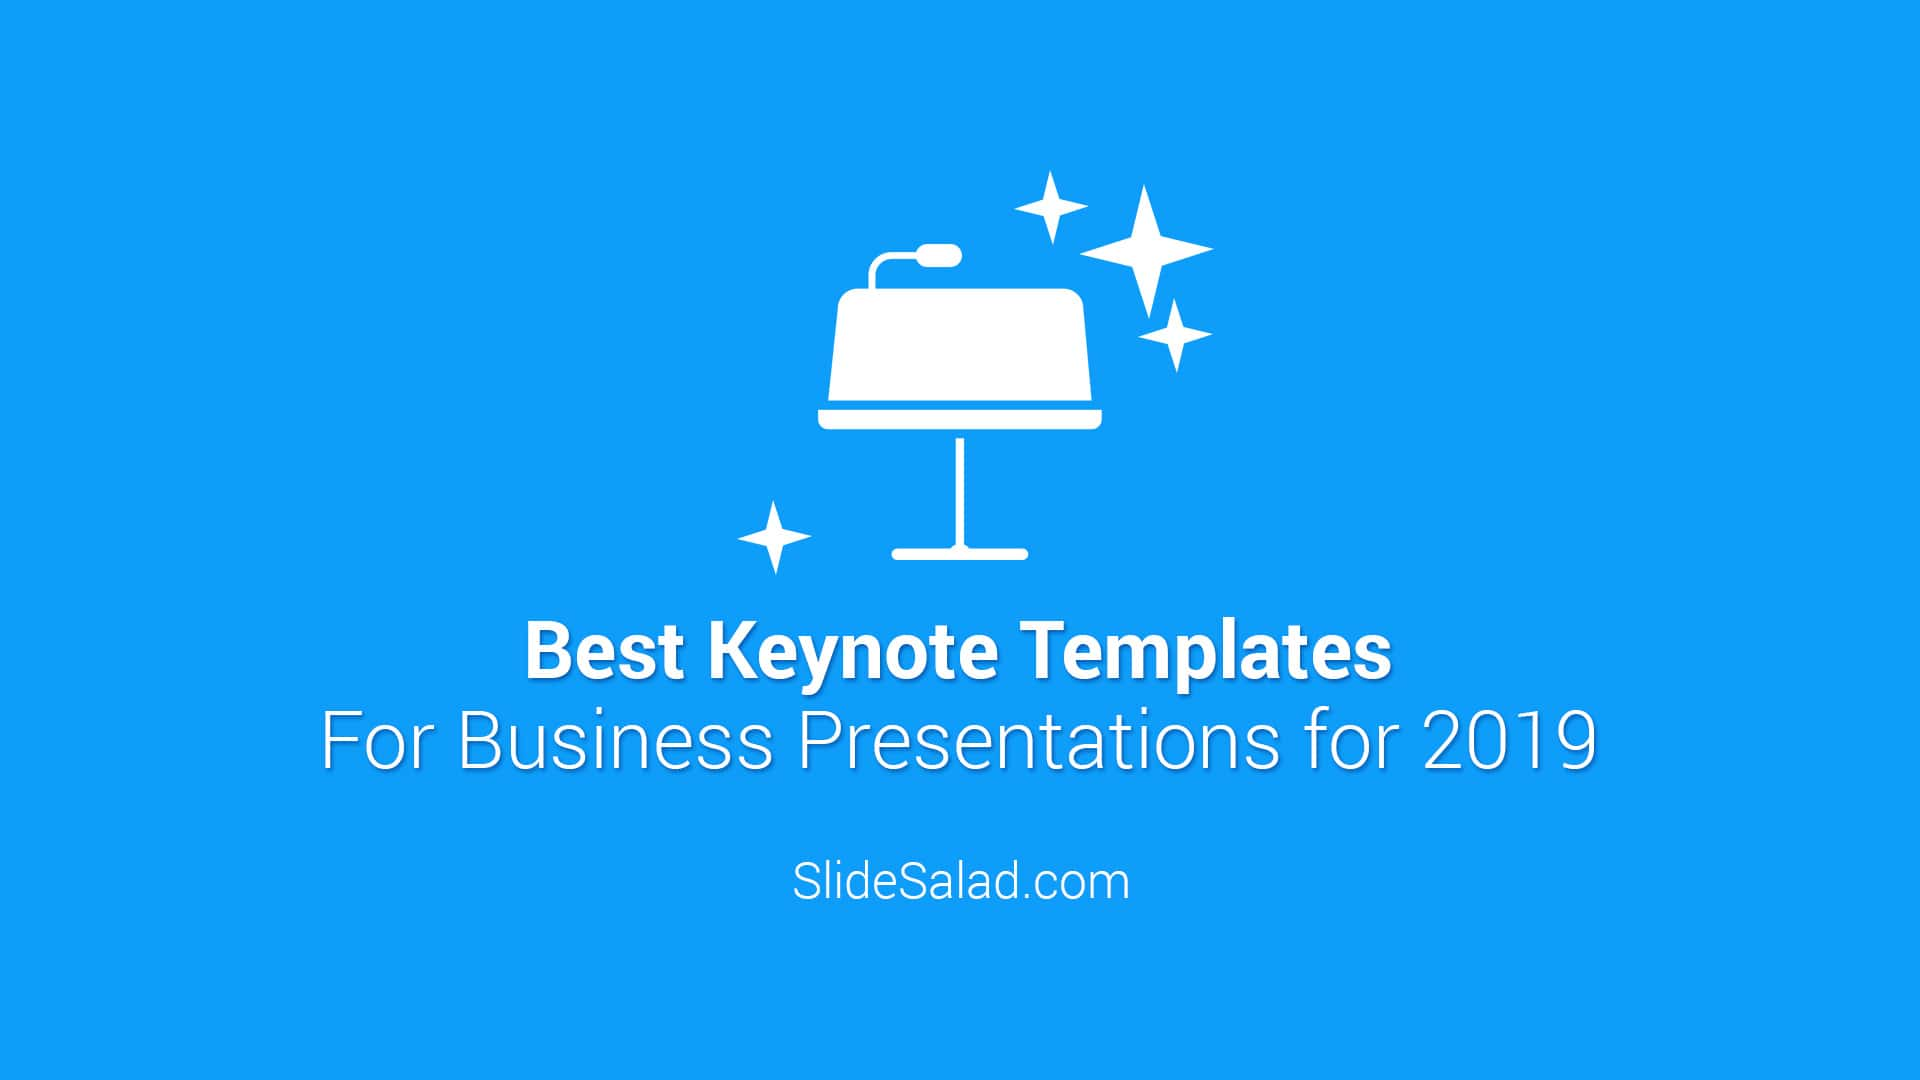 Best Keynote Templates for Business Presentations